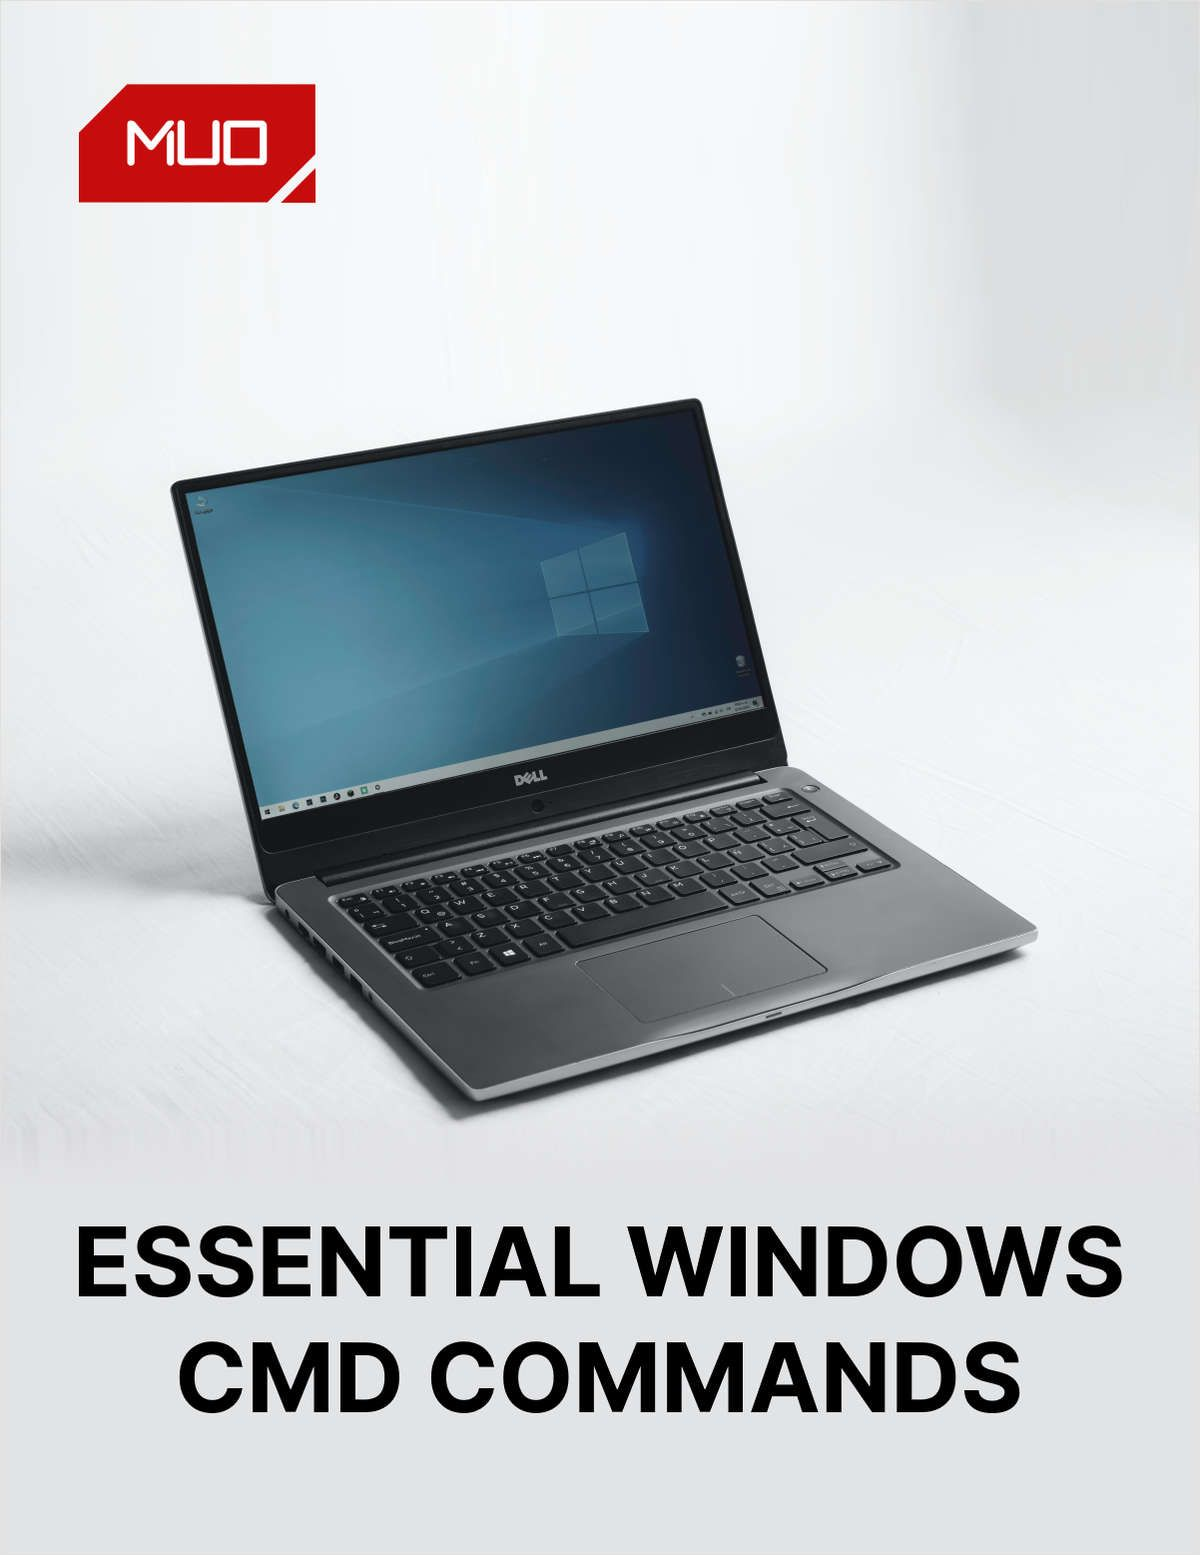 Essential Windows CMD Commands You Should Know